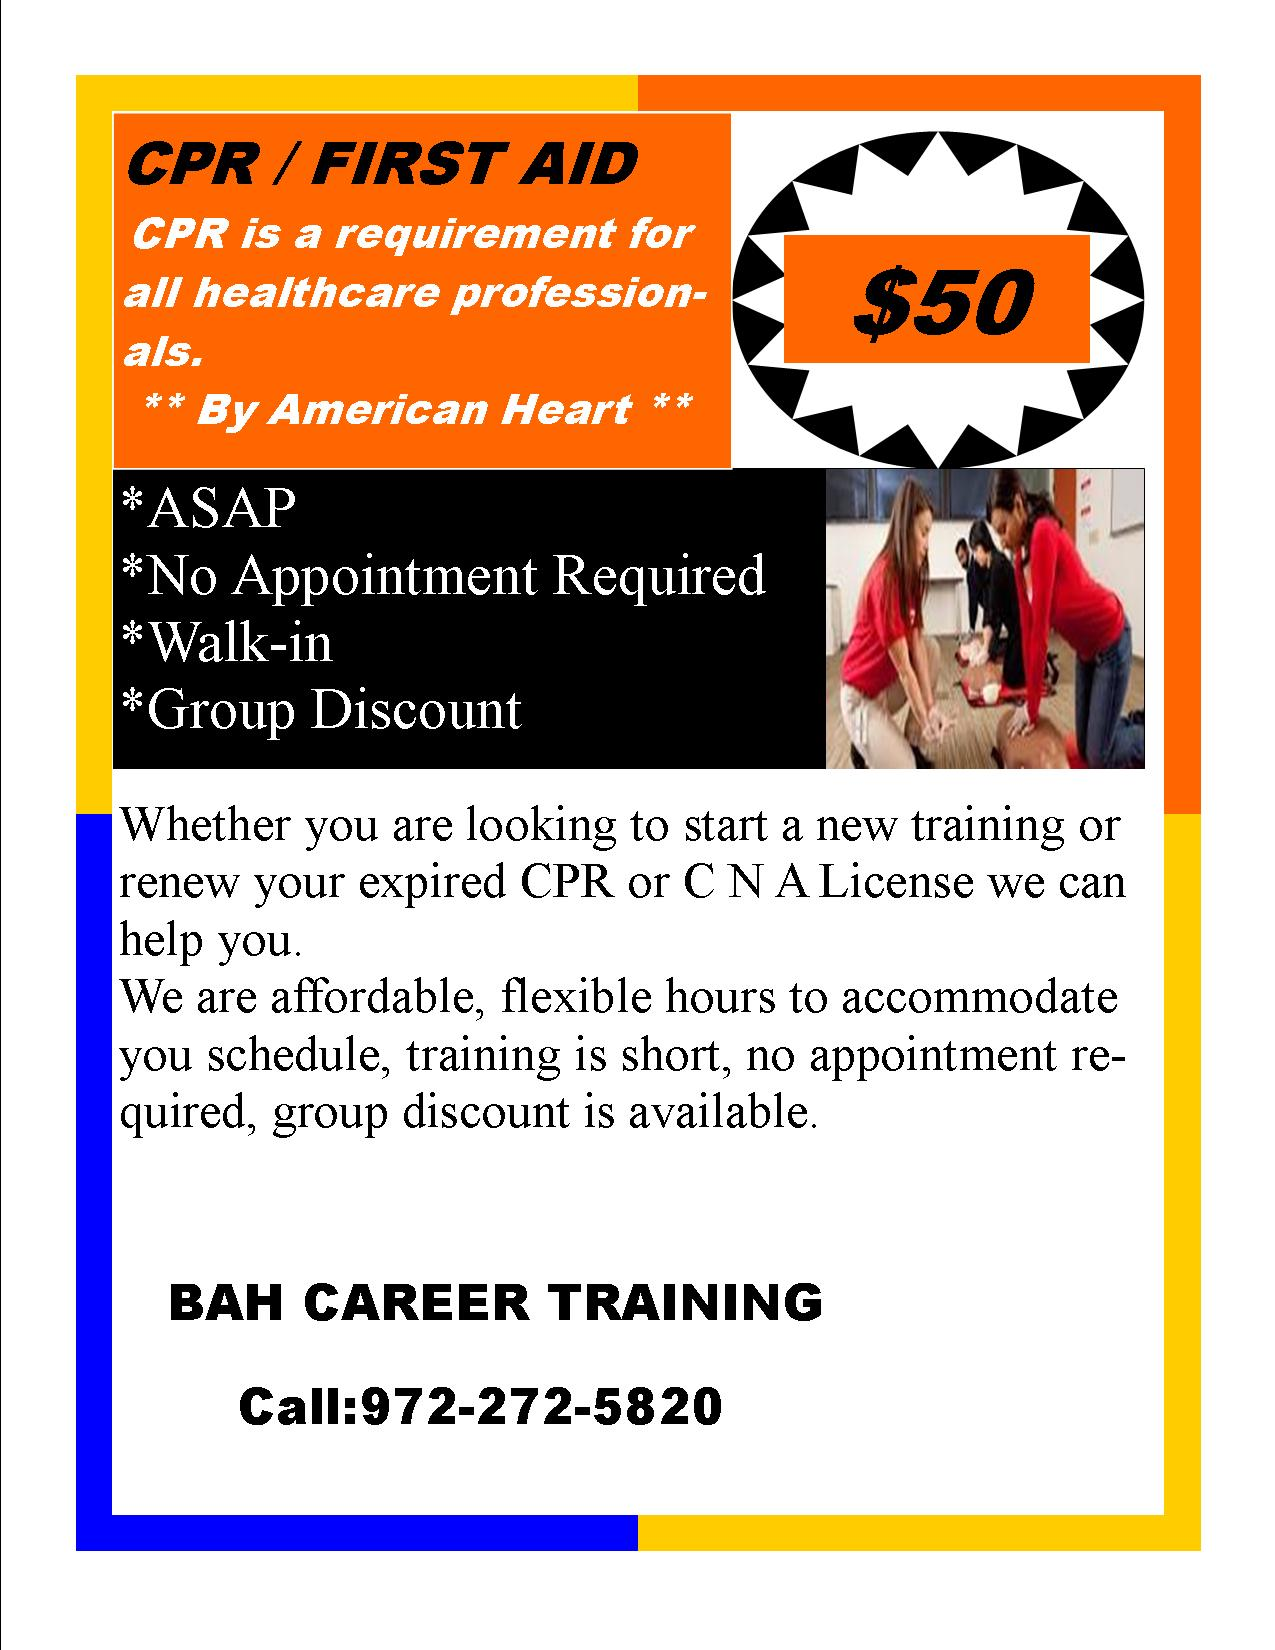 Bah career training garland tx 972 272 5820 discount cprfirst aid asapwalk in click here to print out flyer xflitez Images